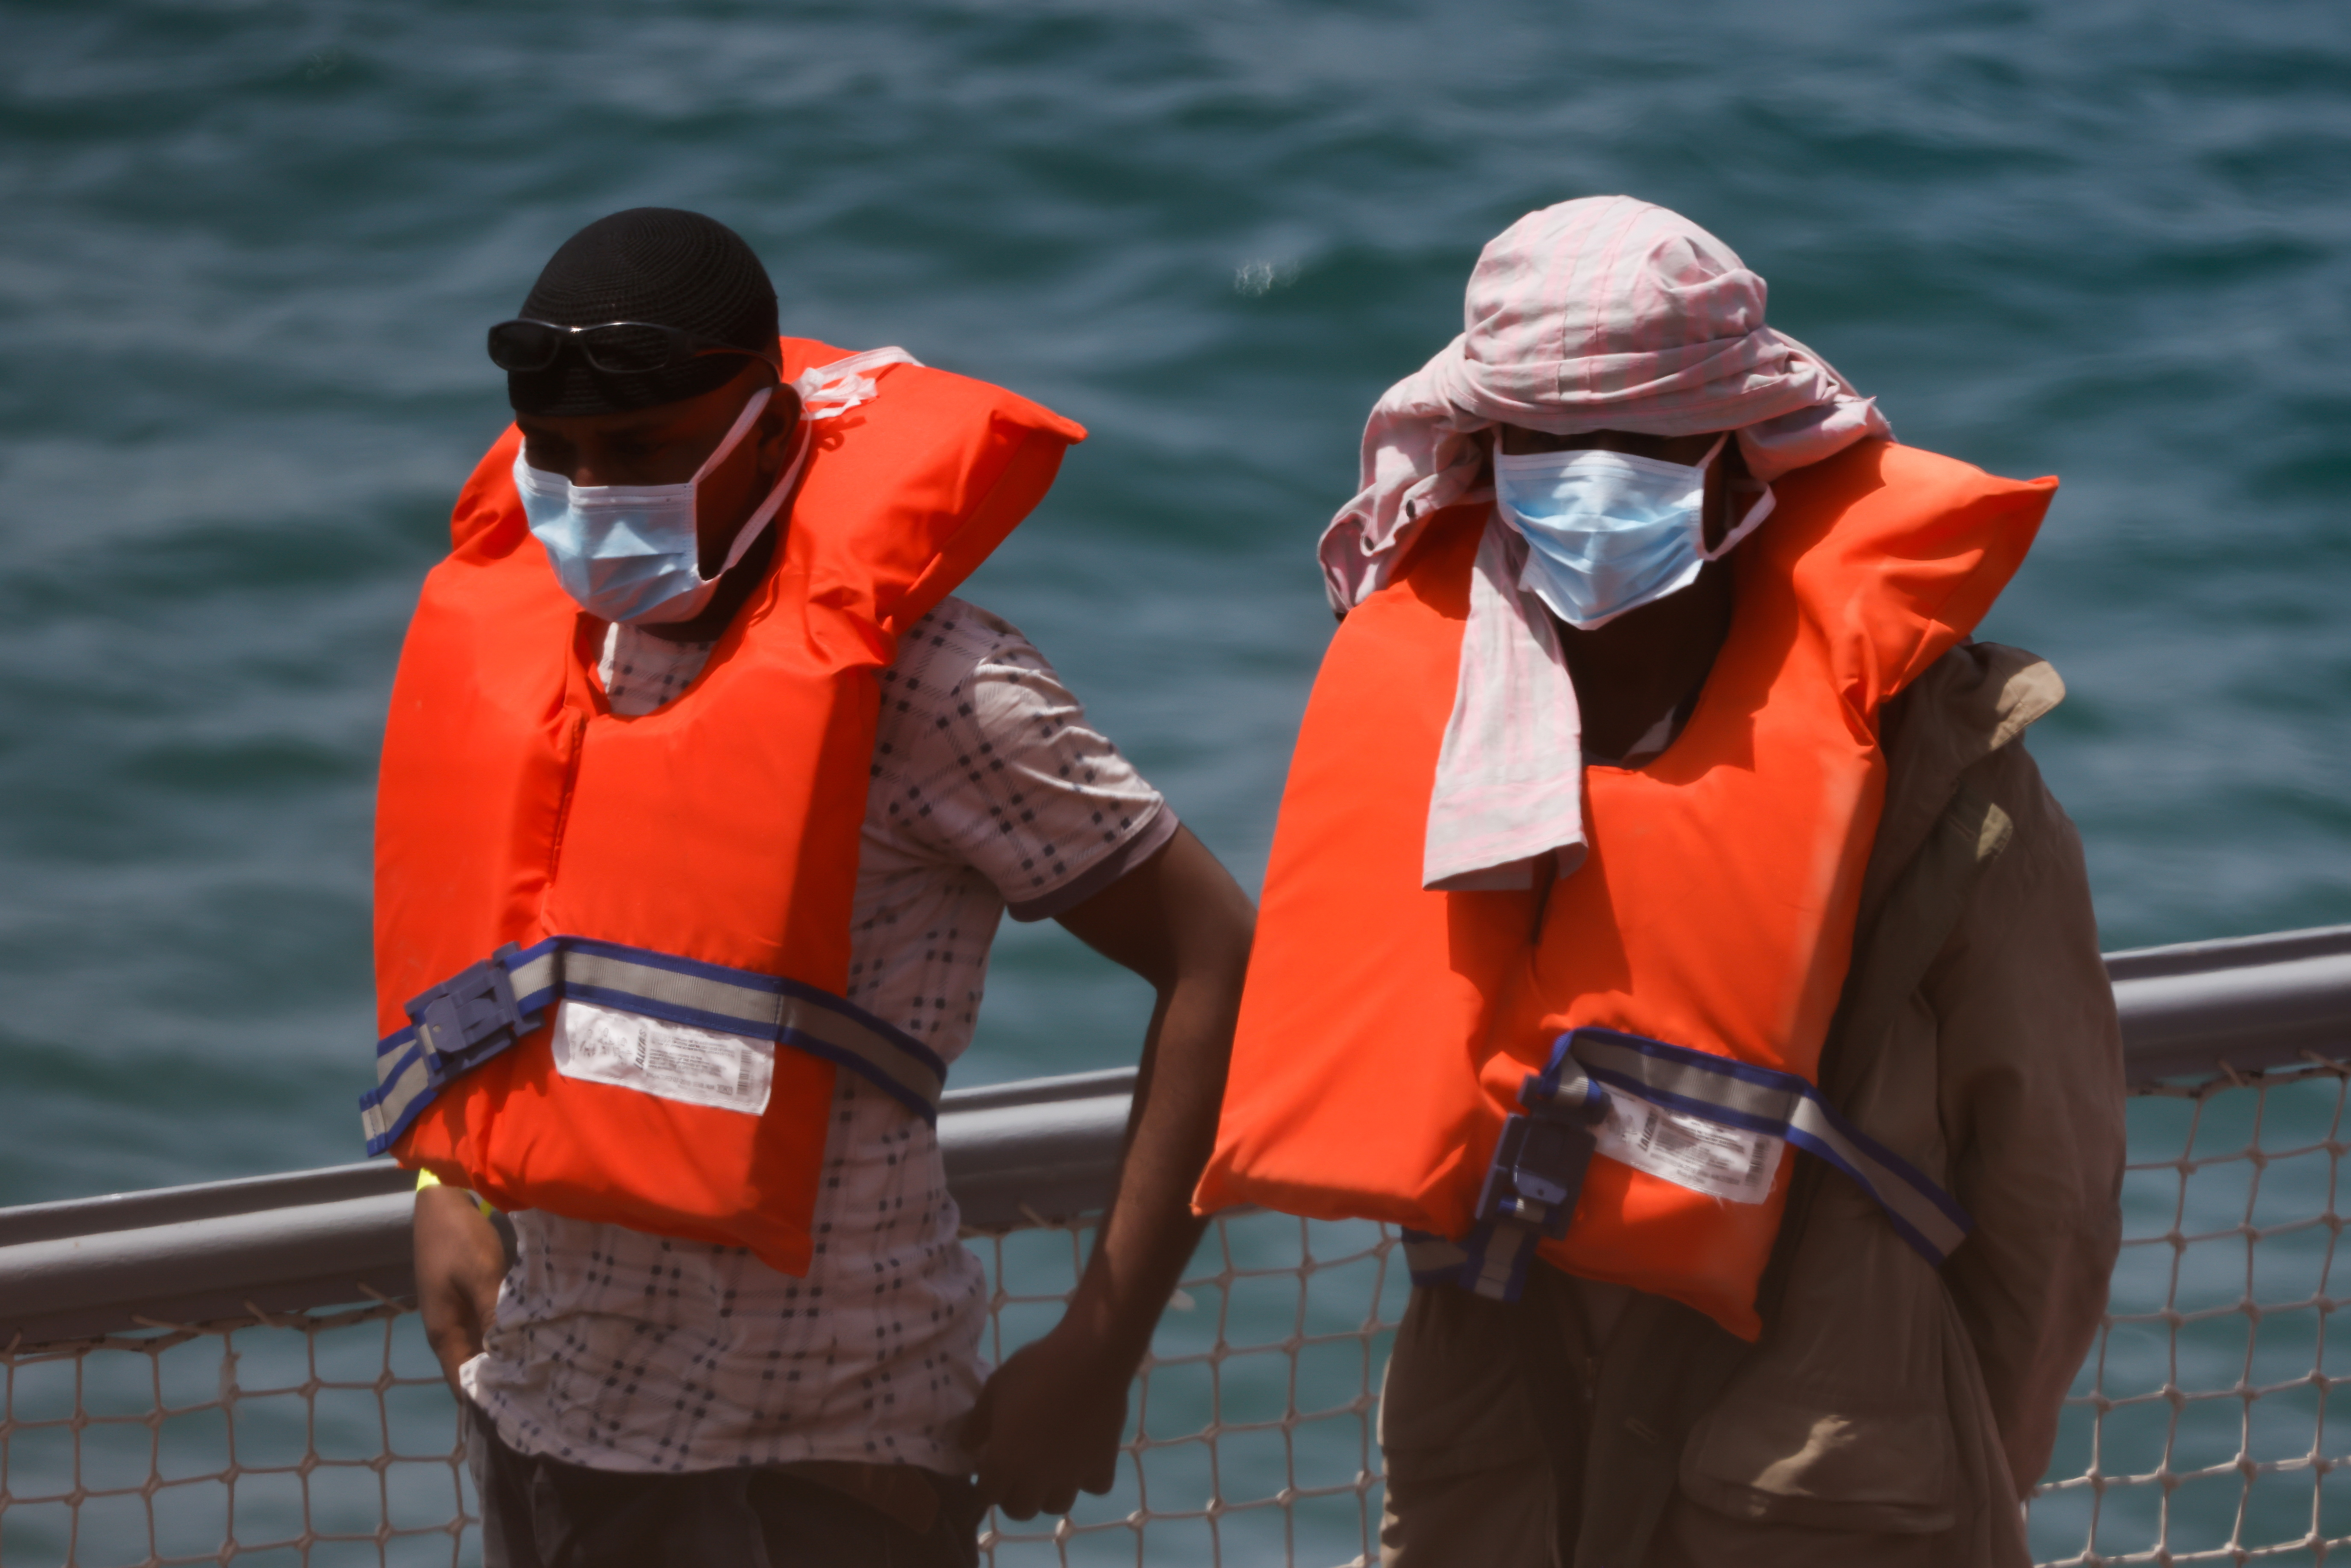 Rescued migrants disembark from an Armed Forces of Malta vessel in Senglea, in Valletta's Grand Harbour, as the coronavirus disease (COVID-19) outbreak continues in Malta May 11, 2021. REUTERS/Darrin Zammit Lupi